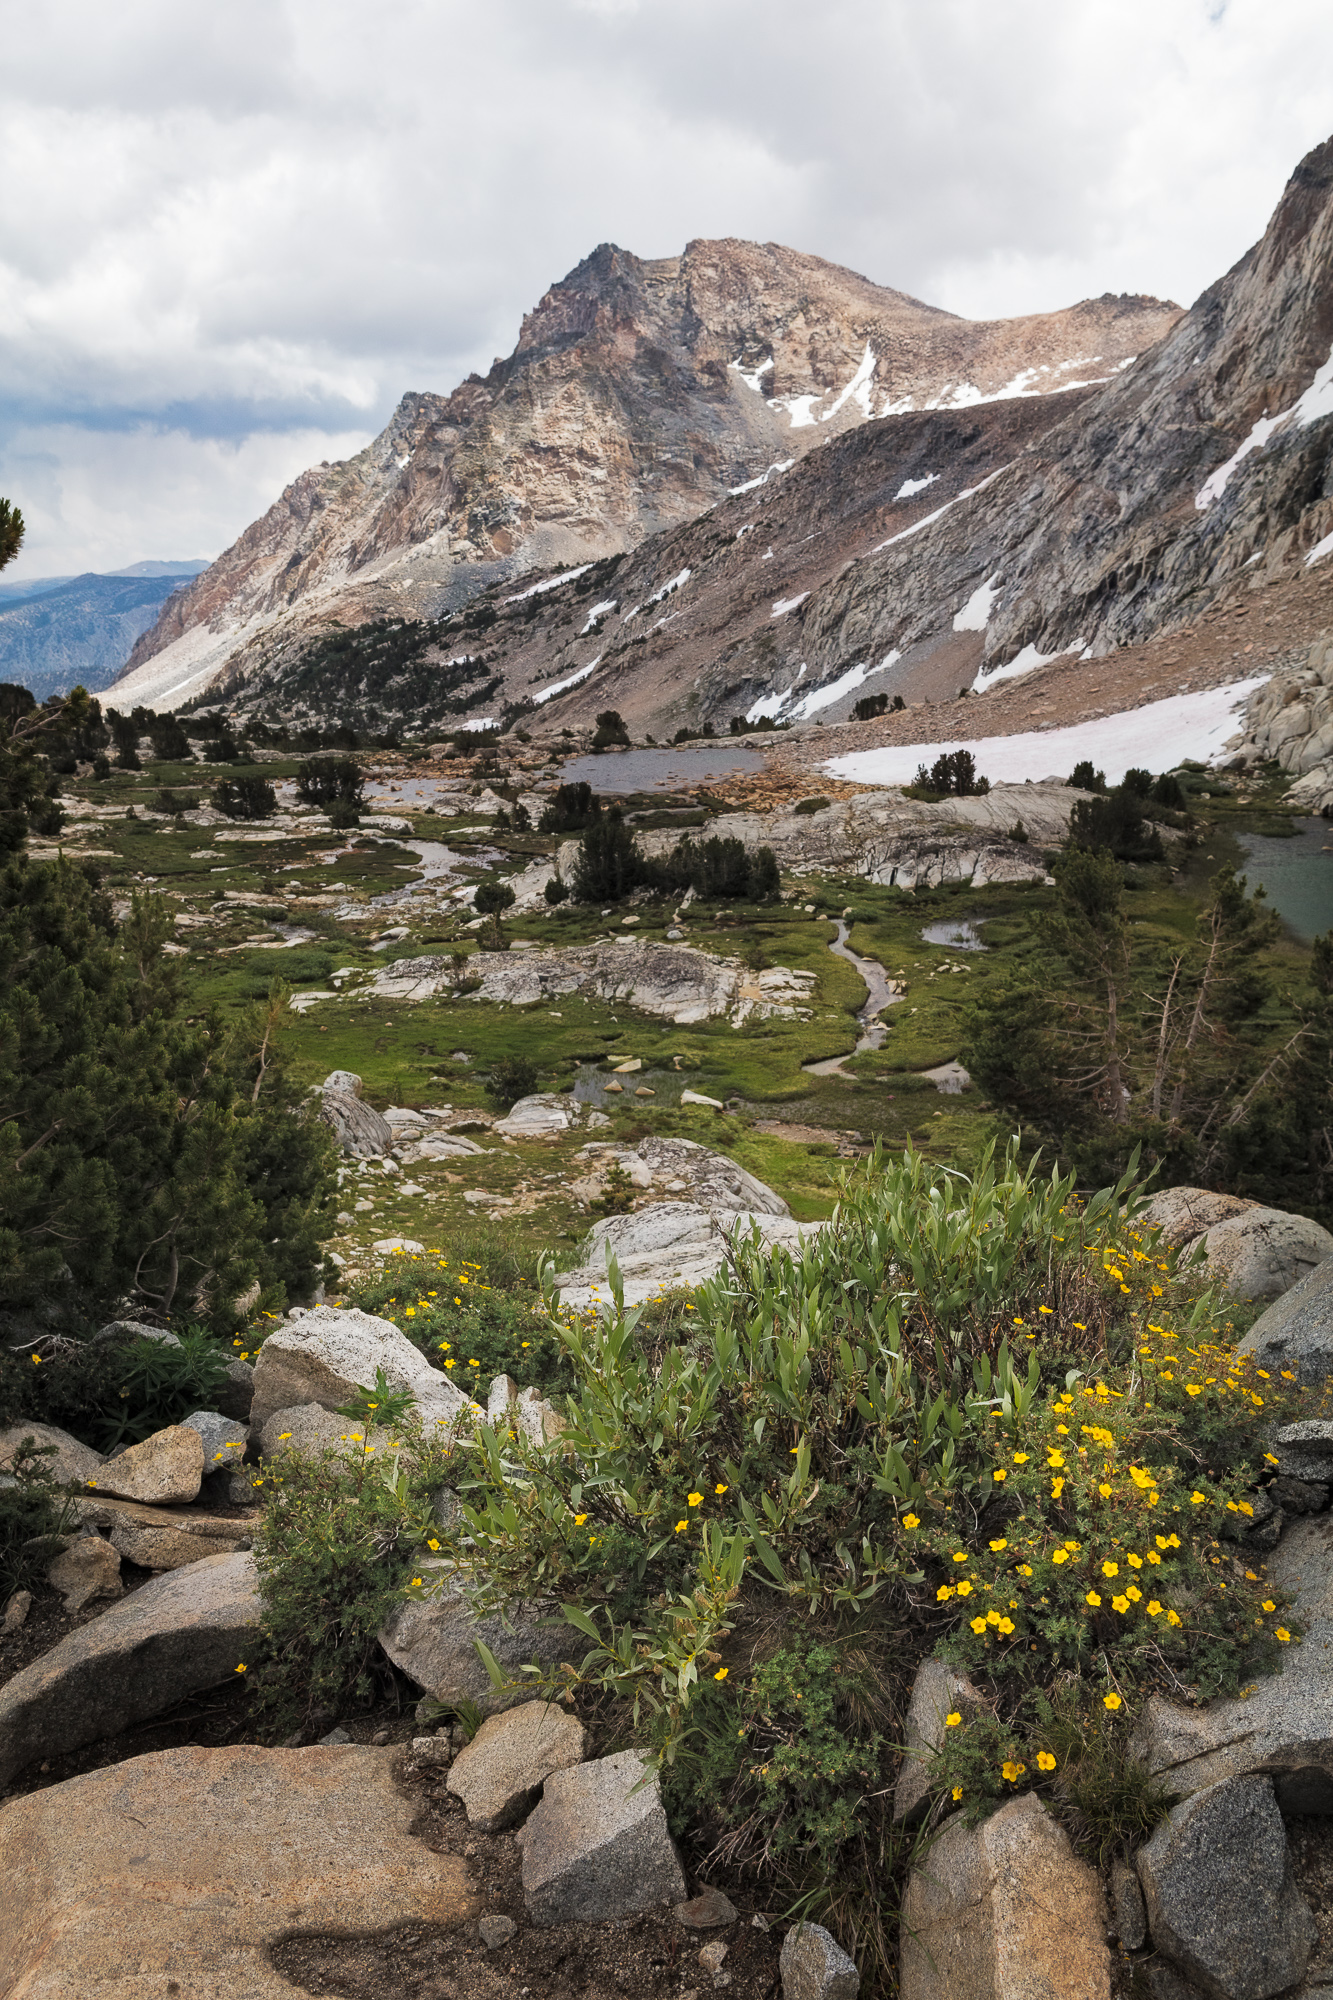 Wildflowers adorn the meadows below Piute Pass, Inyo National Forest, CA